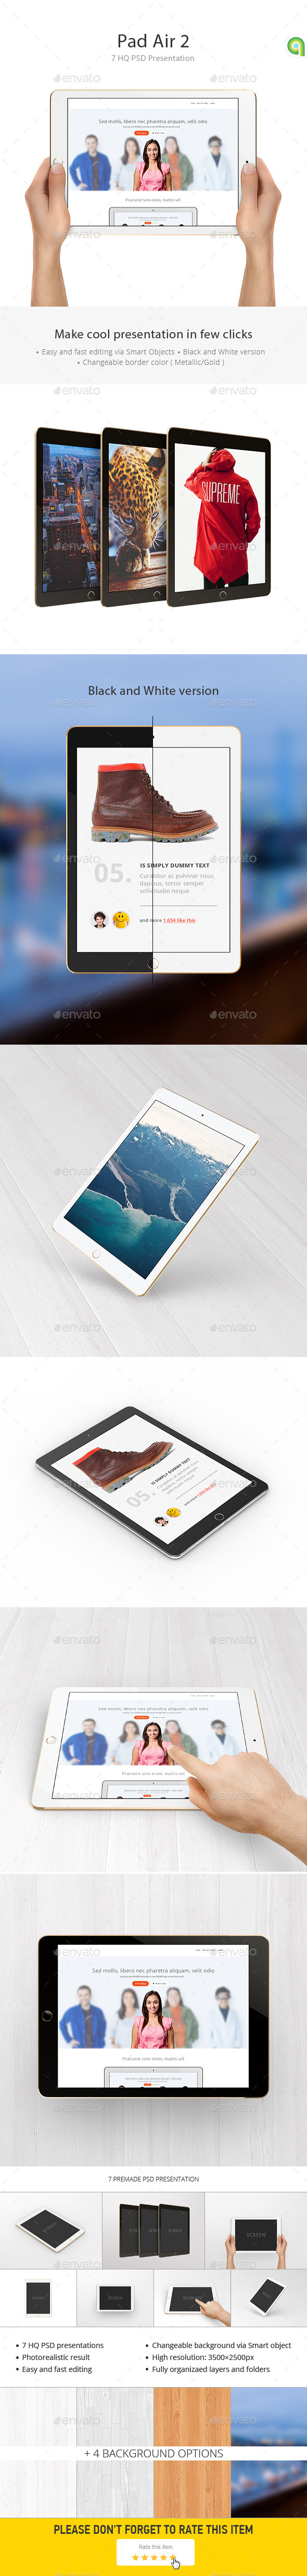 Tablet Mockup - Mobile Displays